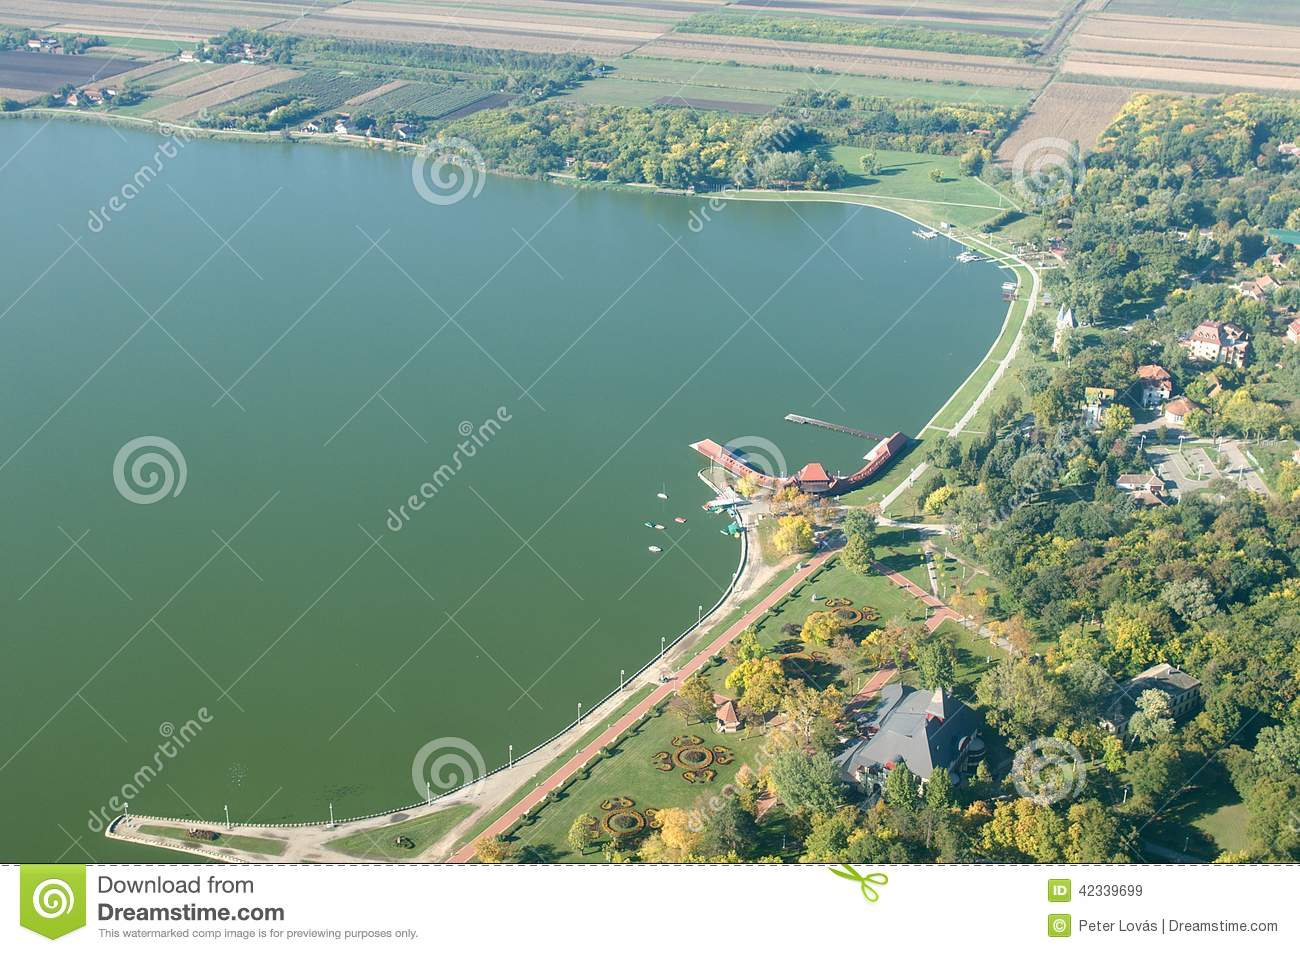 Comstock Park (MI) United States  city photos gallery : Palić Lake is a lake situated 8 kilometres 5.0 mi from Subotica ...